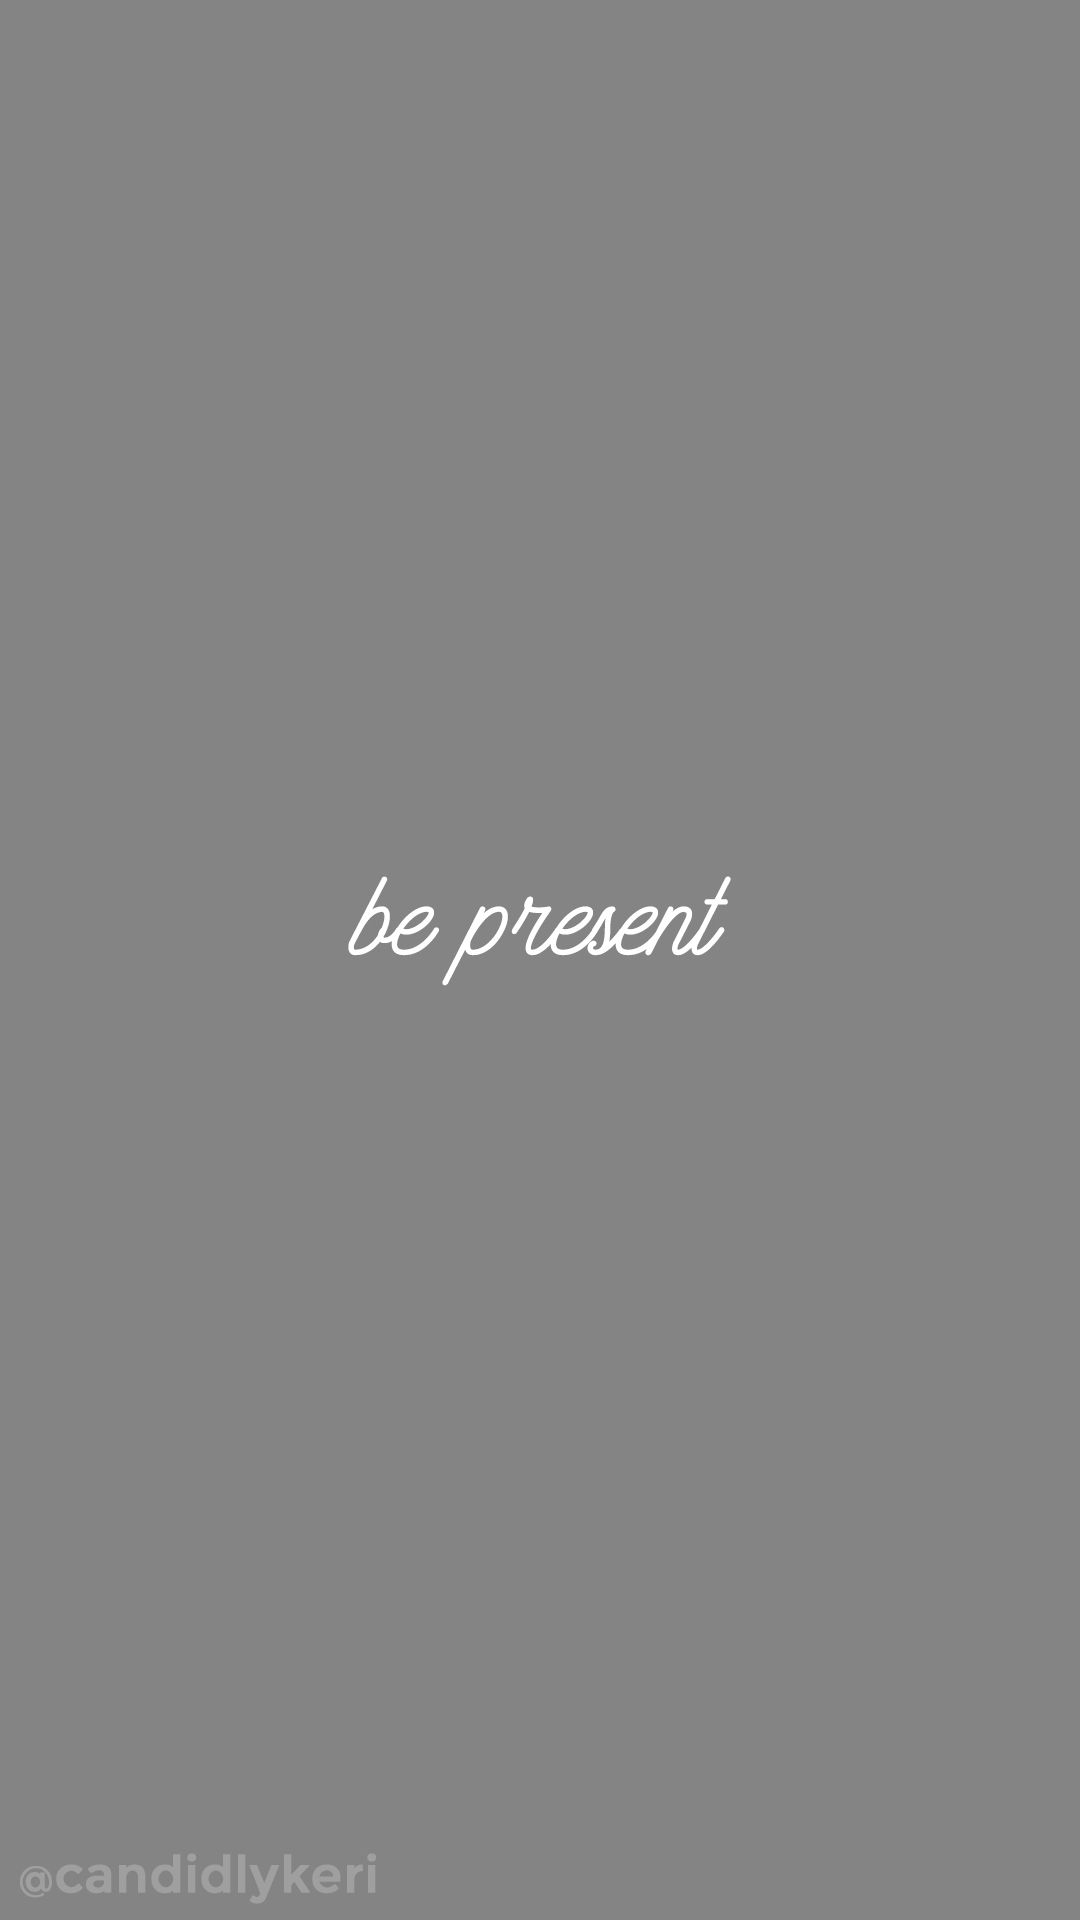 be present quote gray and white inspirational motivational quote